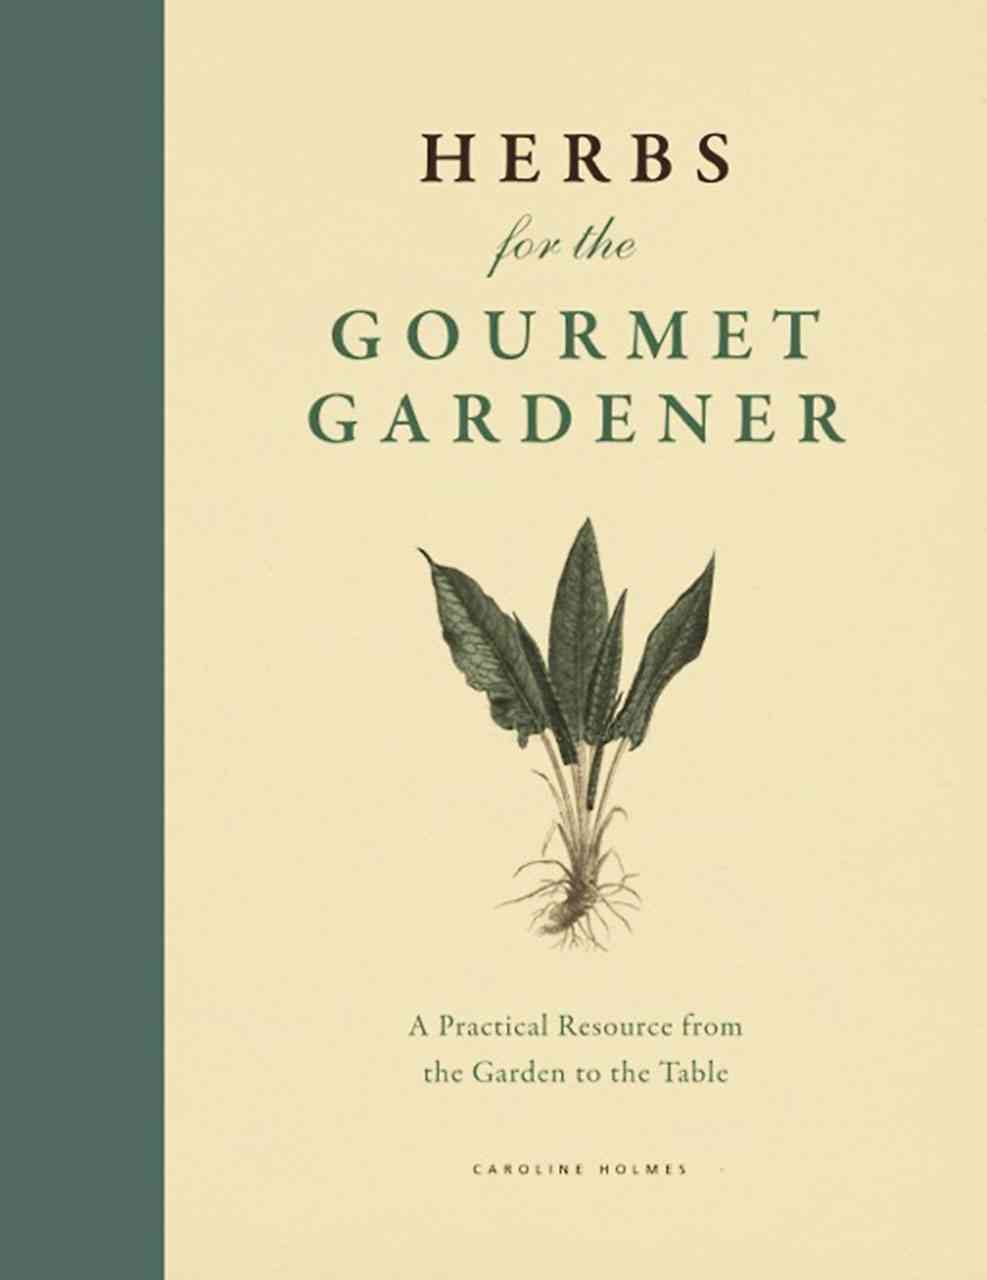 Herbs for the Gourmet Gardener By Holmes, Caroline